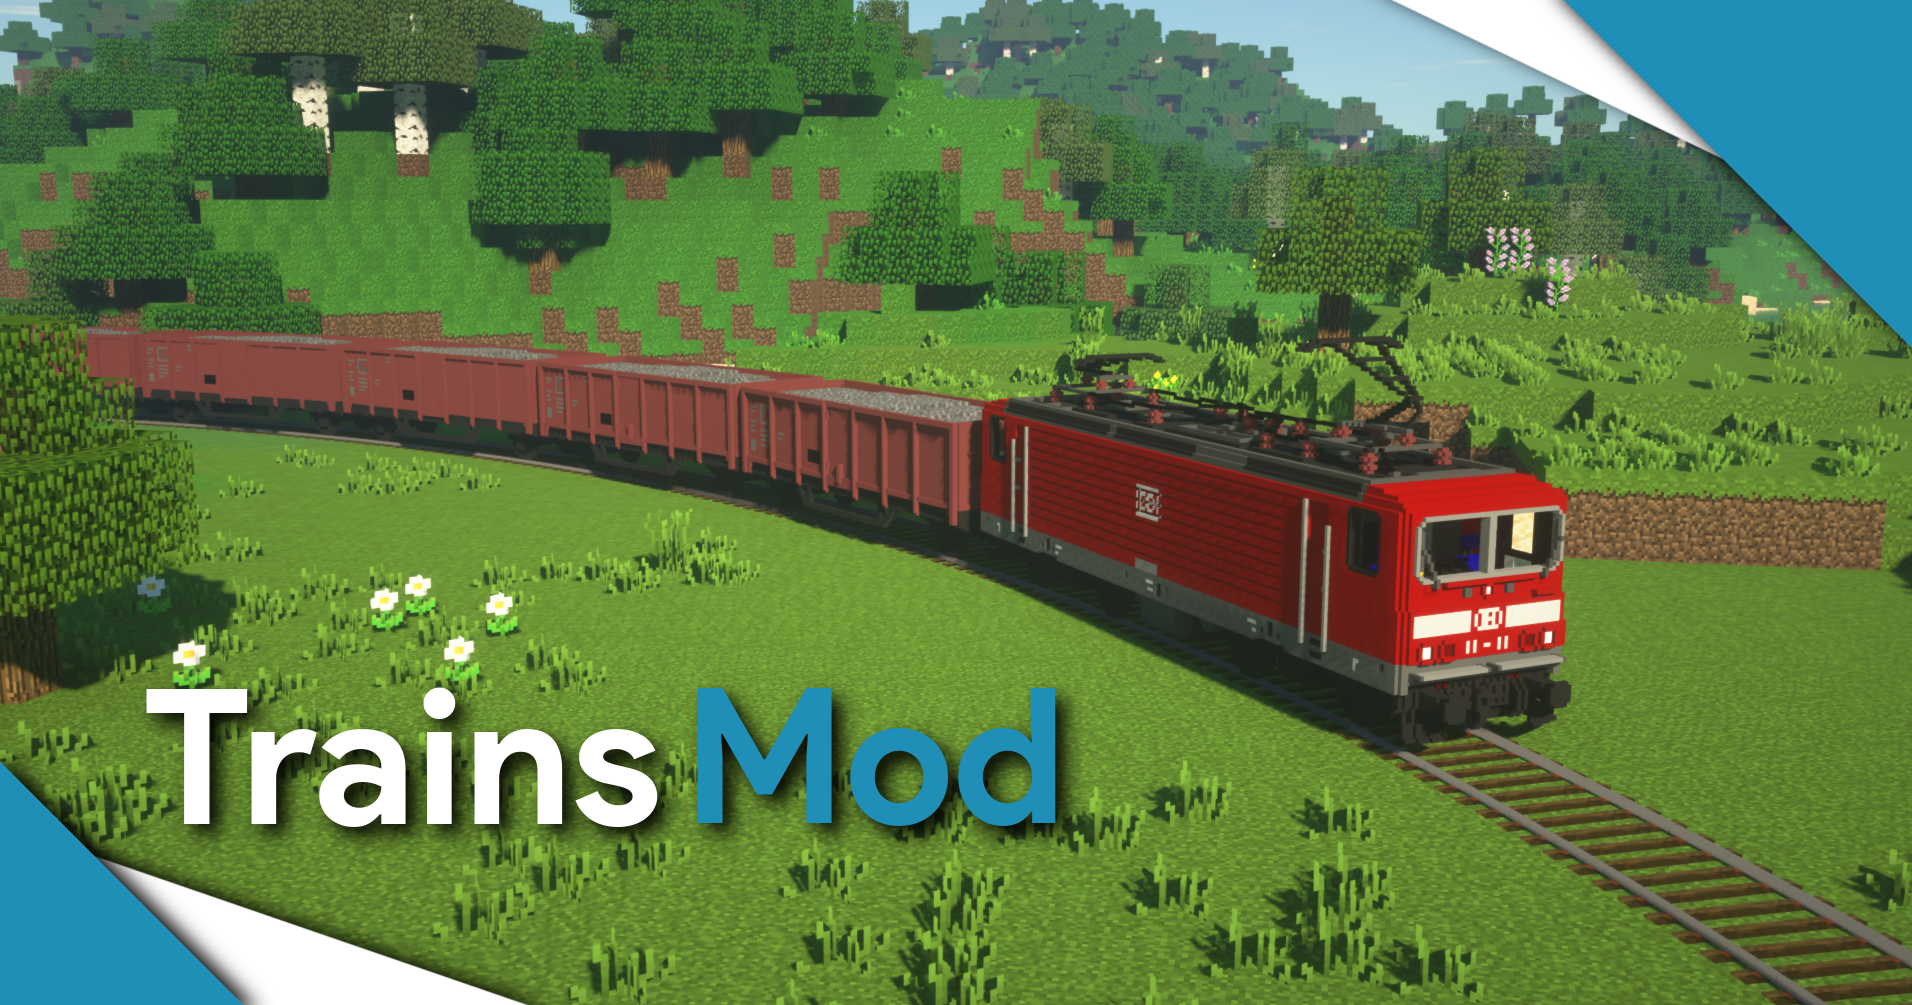 Trains Mod - Mods - Minecraft - CurseForge